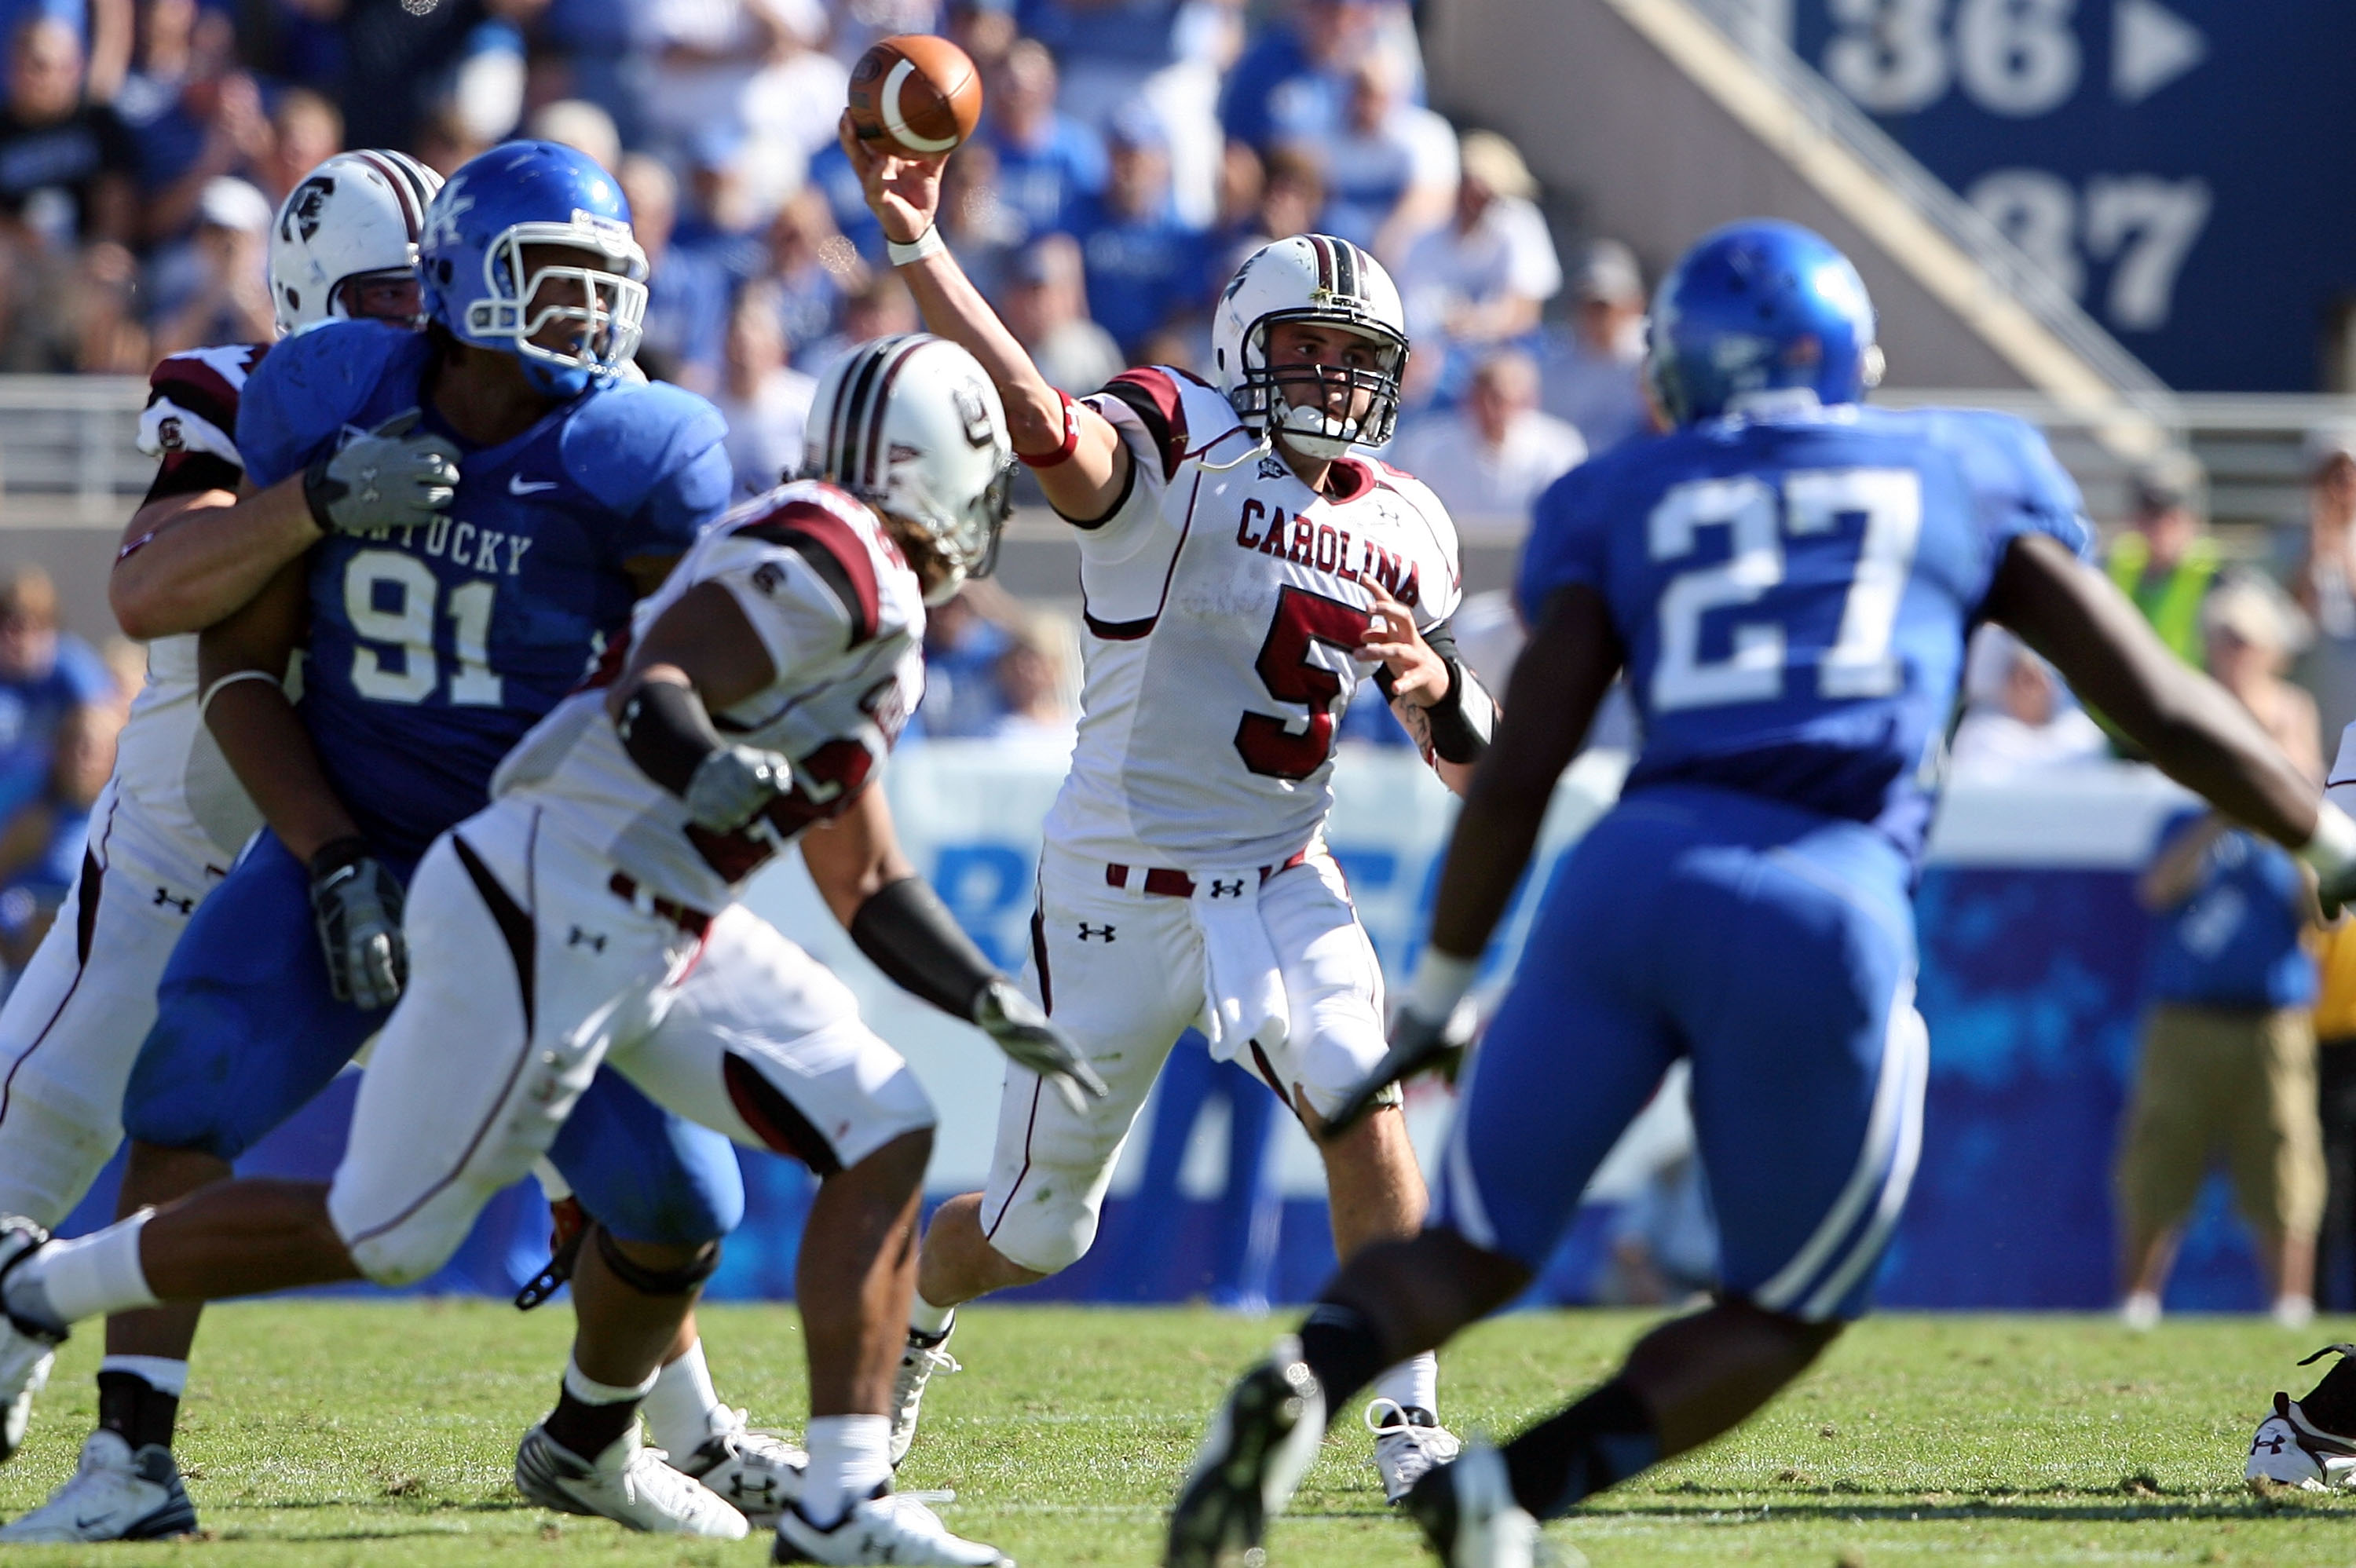 LEXINGTON, KY - OCTOBER 11:  Stephen Garcia #5 of  the South Carolina Gamecocks throws a pass against the Kentucky Widcats during the game at Commonwealth Stadium on October 11, 2008 in Lexington, Kentucky  (Photo by Andy Lyons/Getty Images)